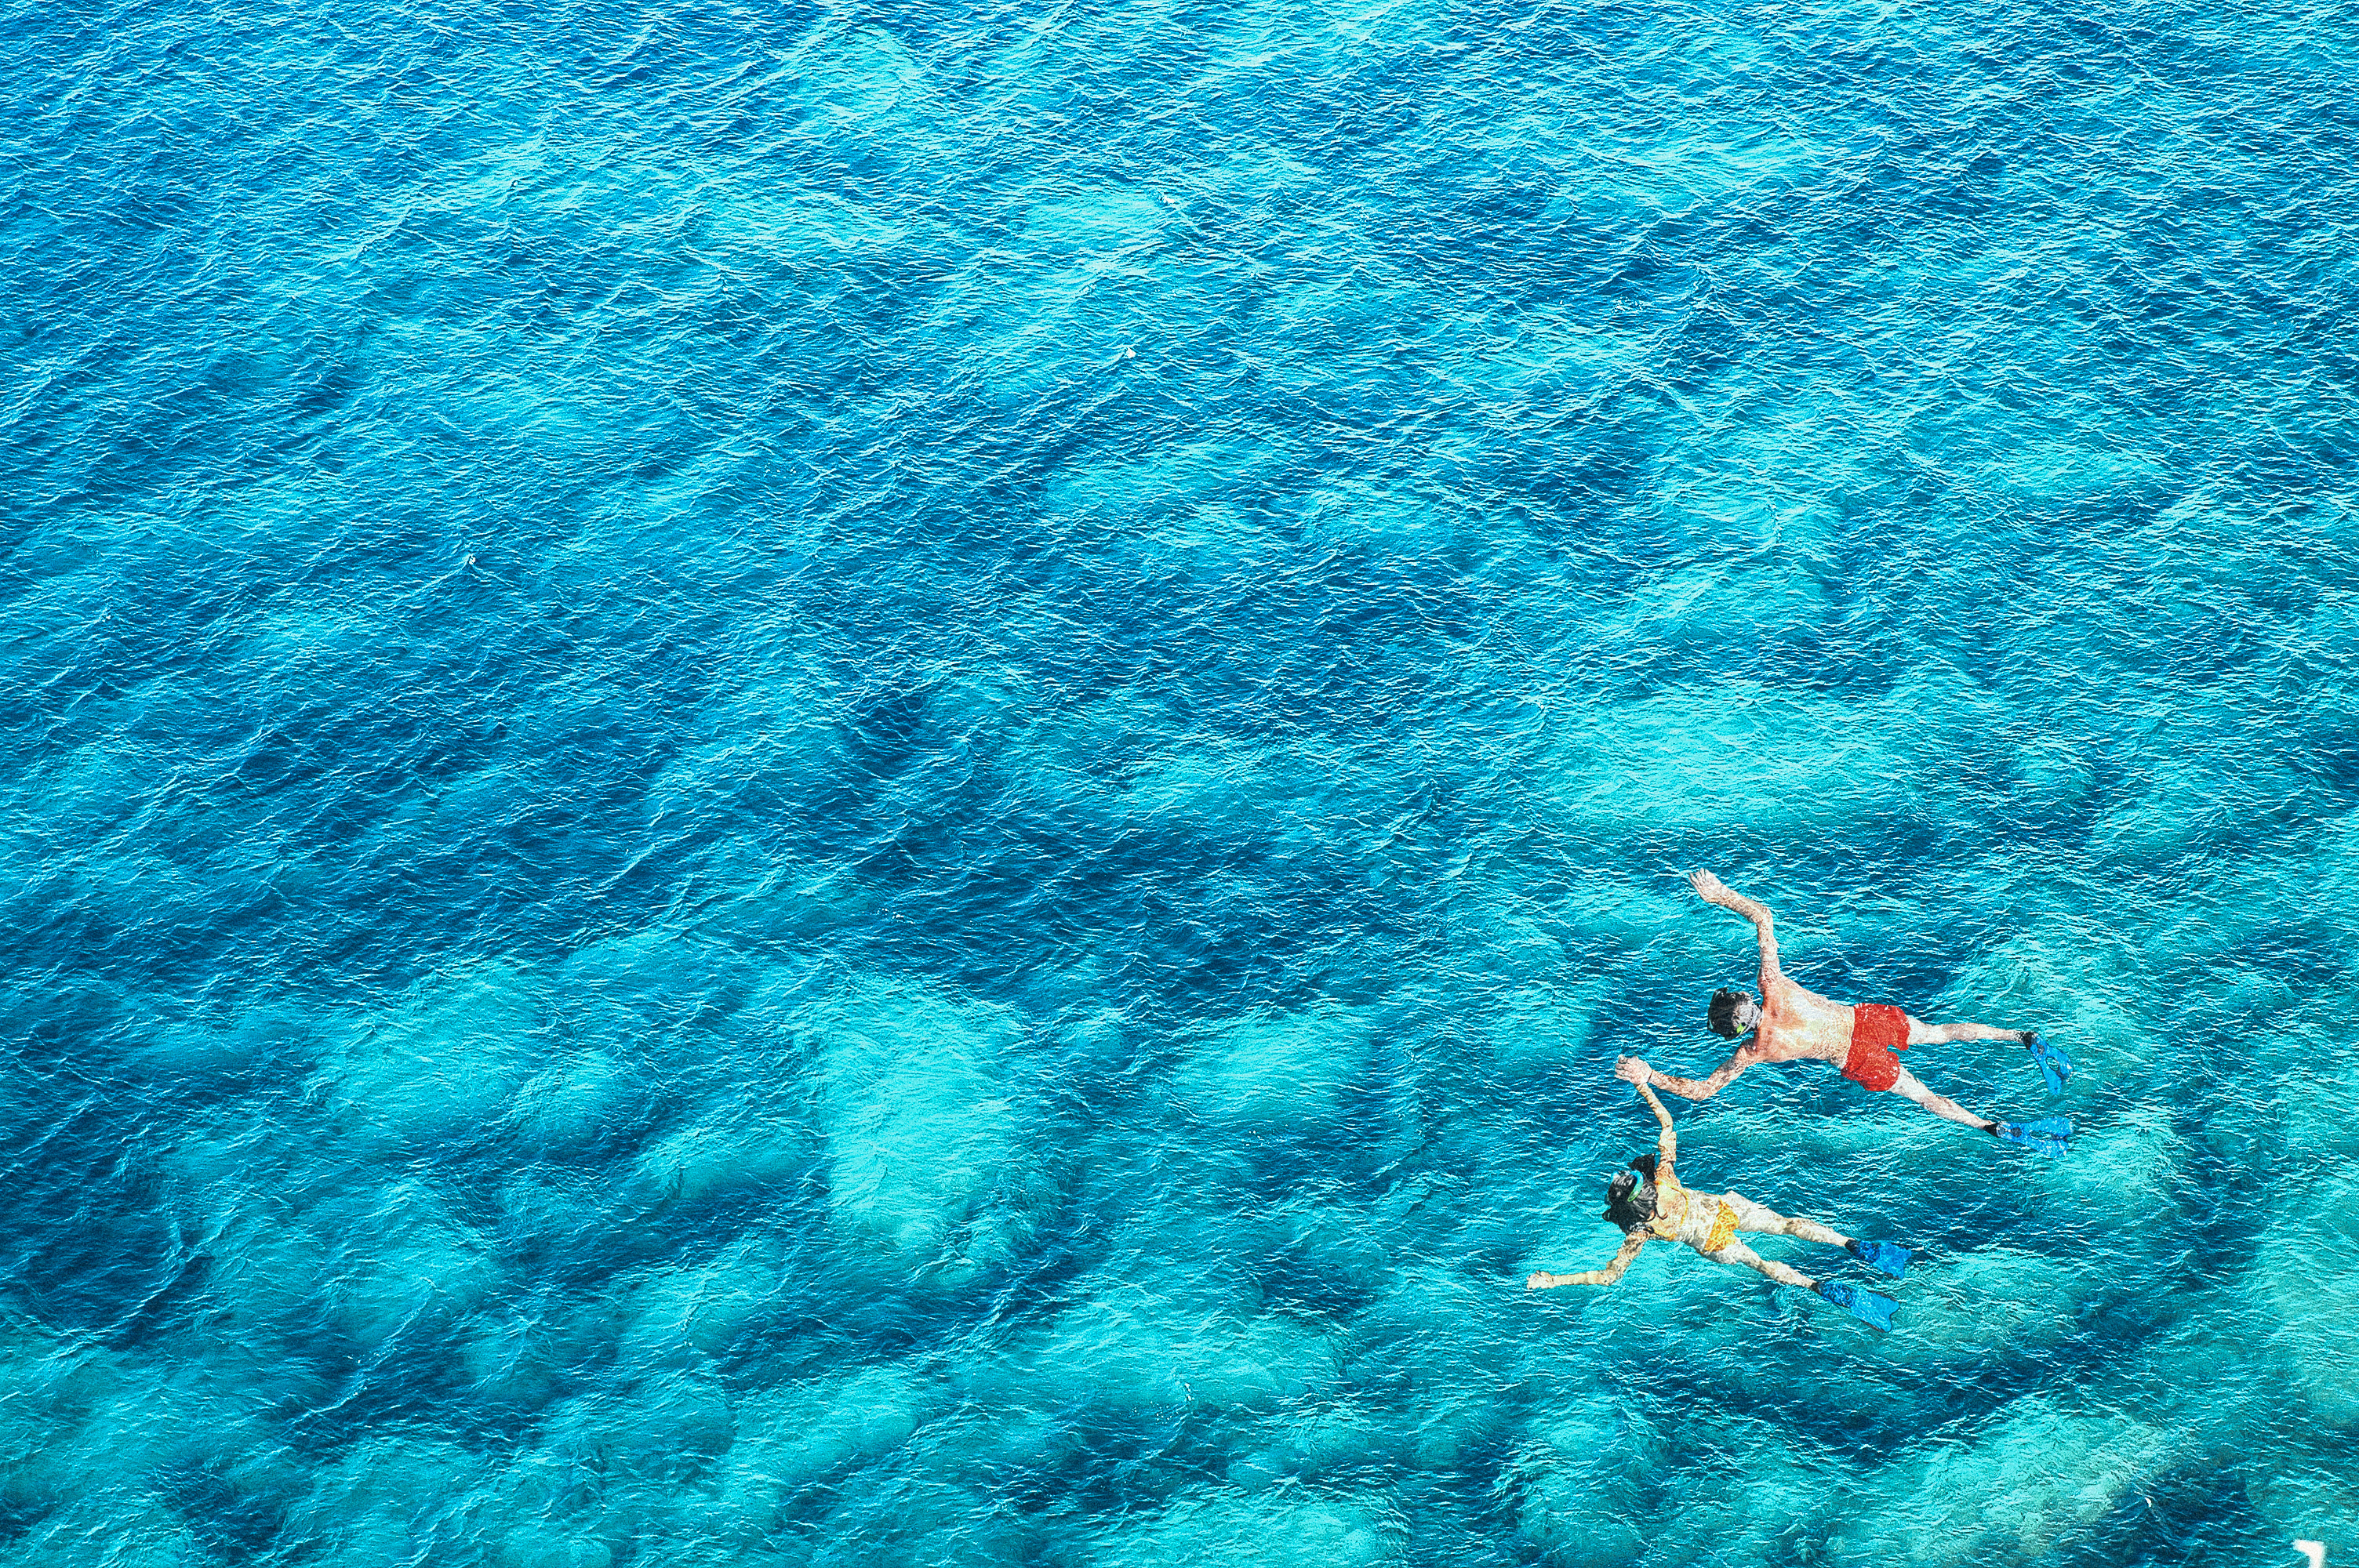 above-view-of-couple-snorkeling-in-blue-sea-water--PK329QS